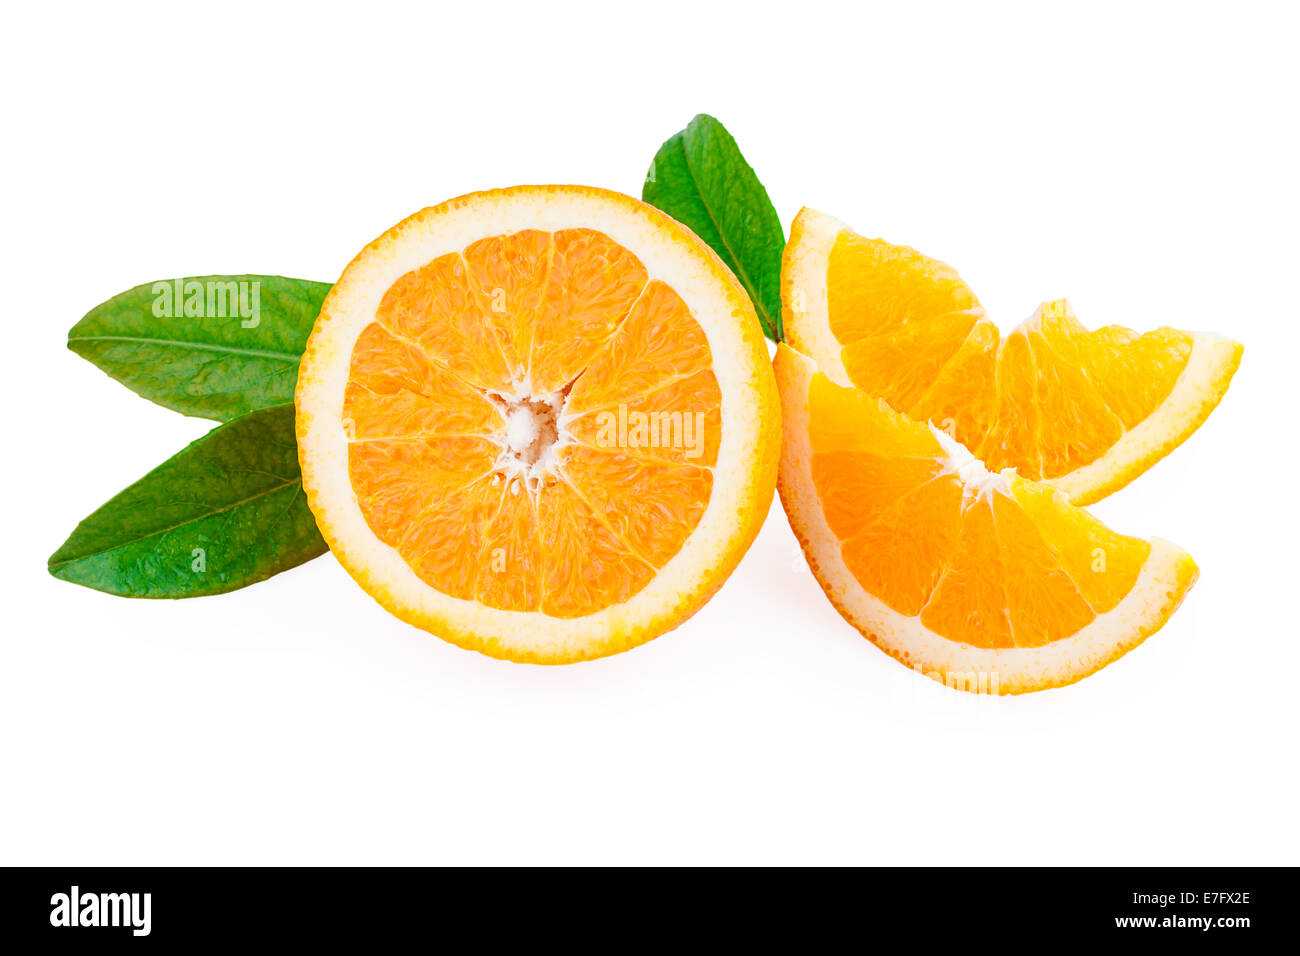 Oranges Fruit and slices of fruit - Stock Image